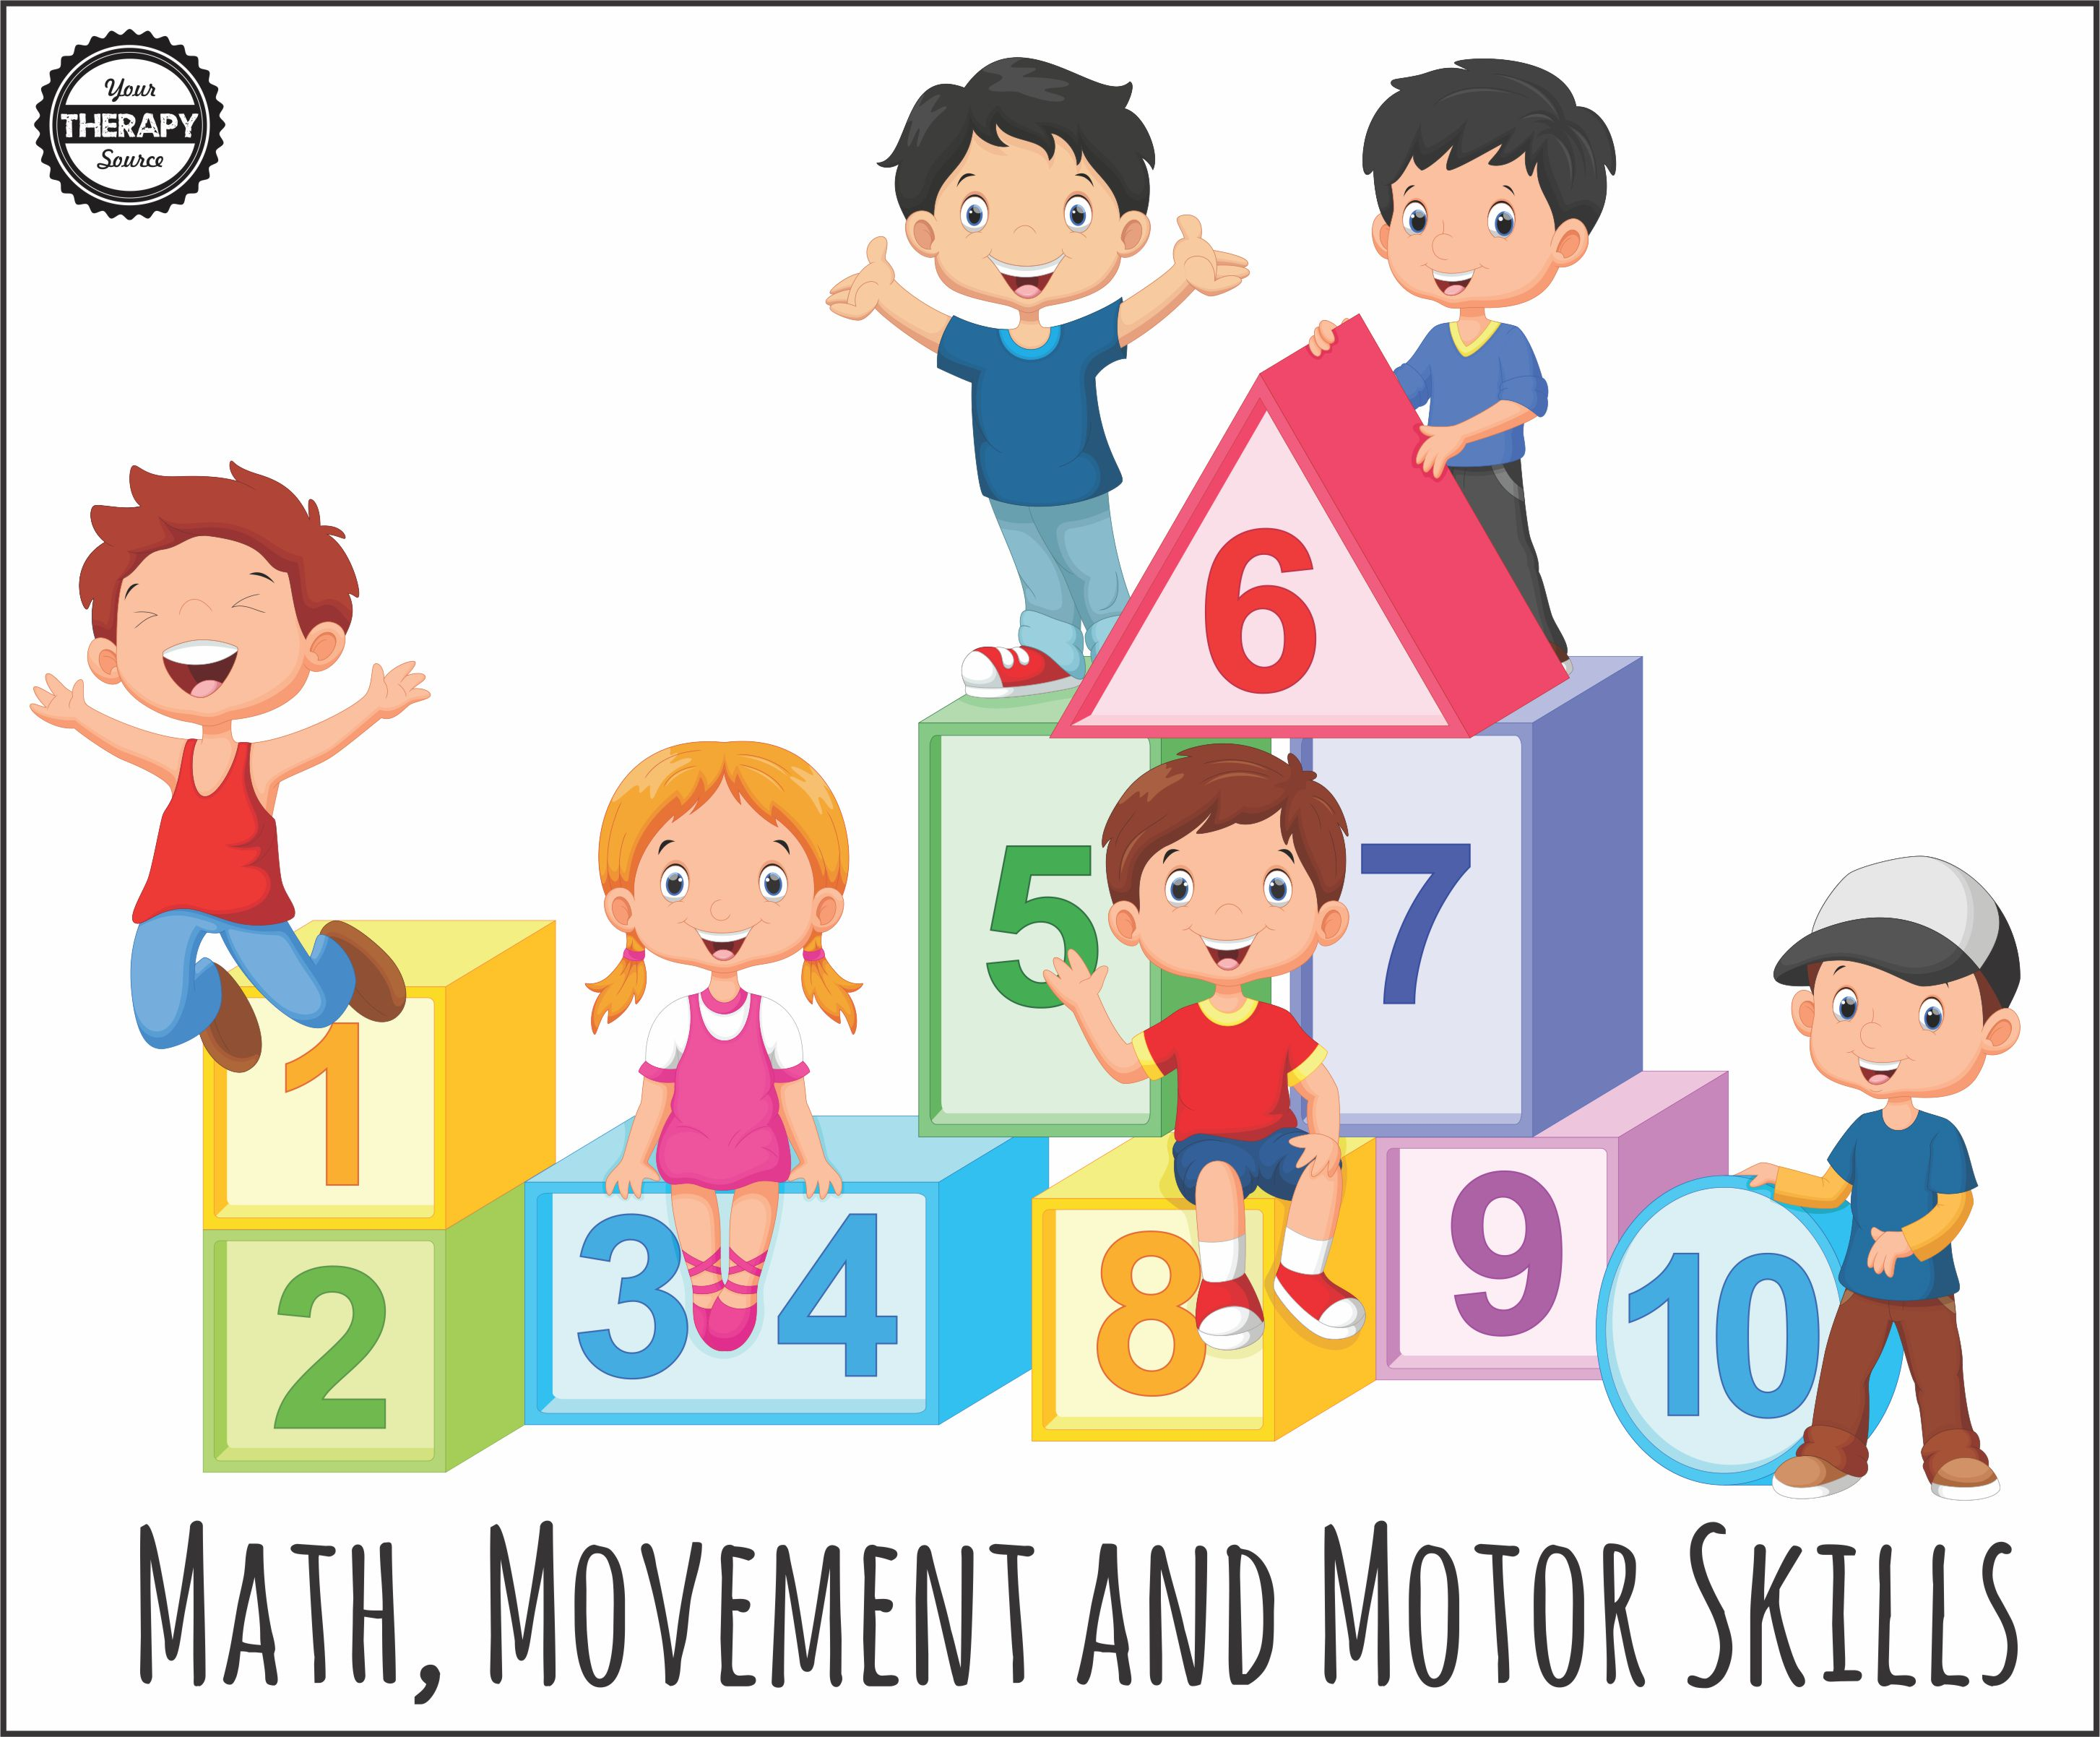 Cartoon physical therapy - Math Movement And Motor Skills